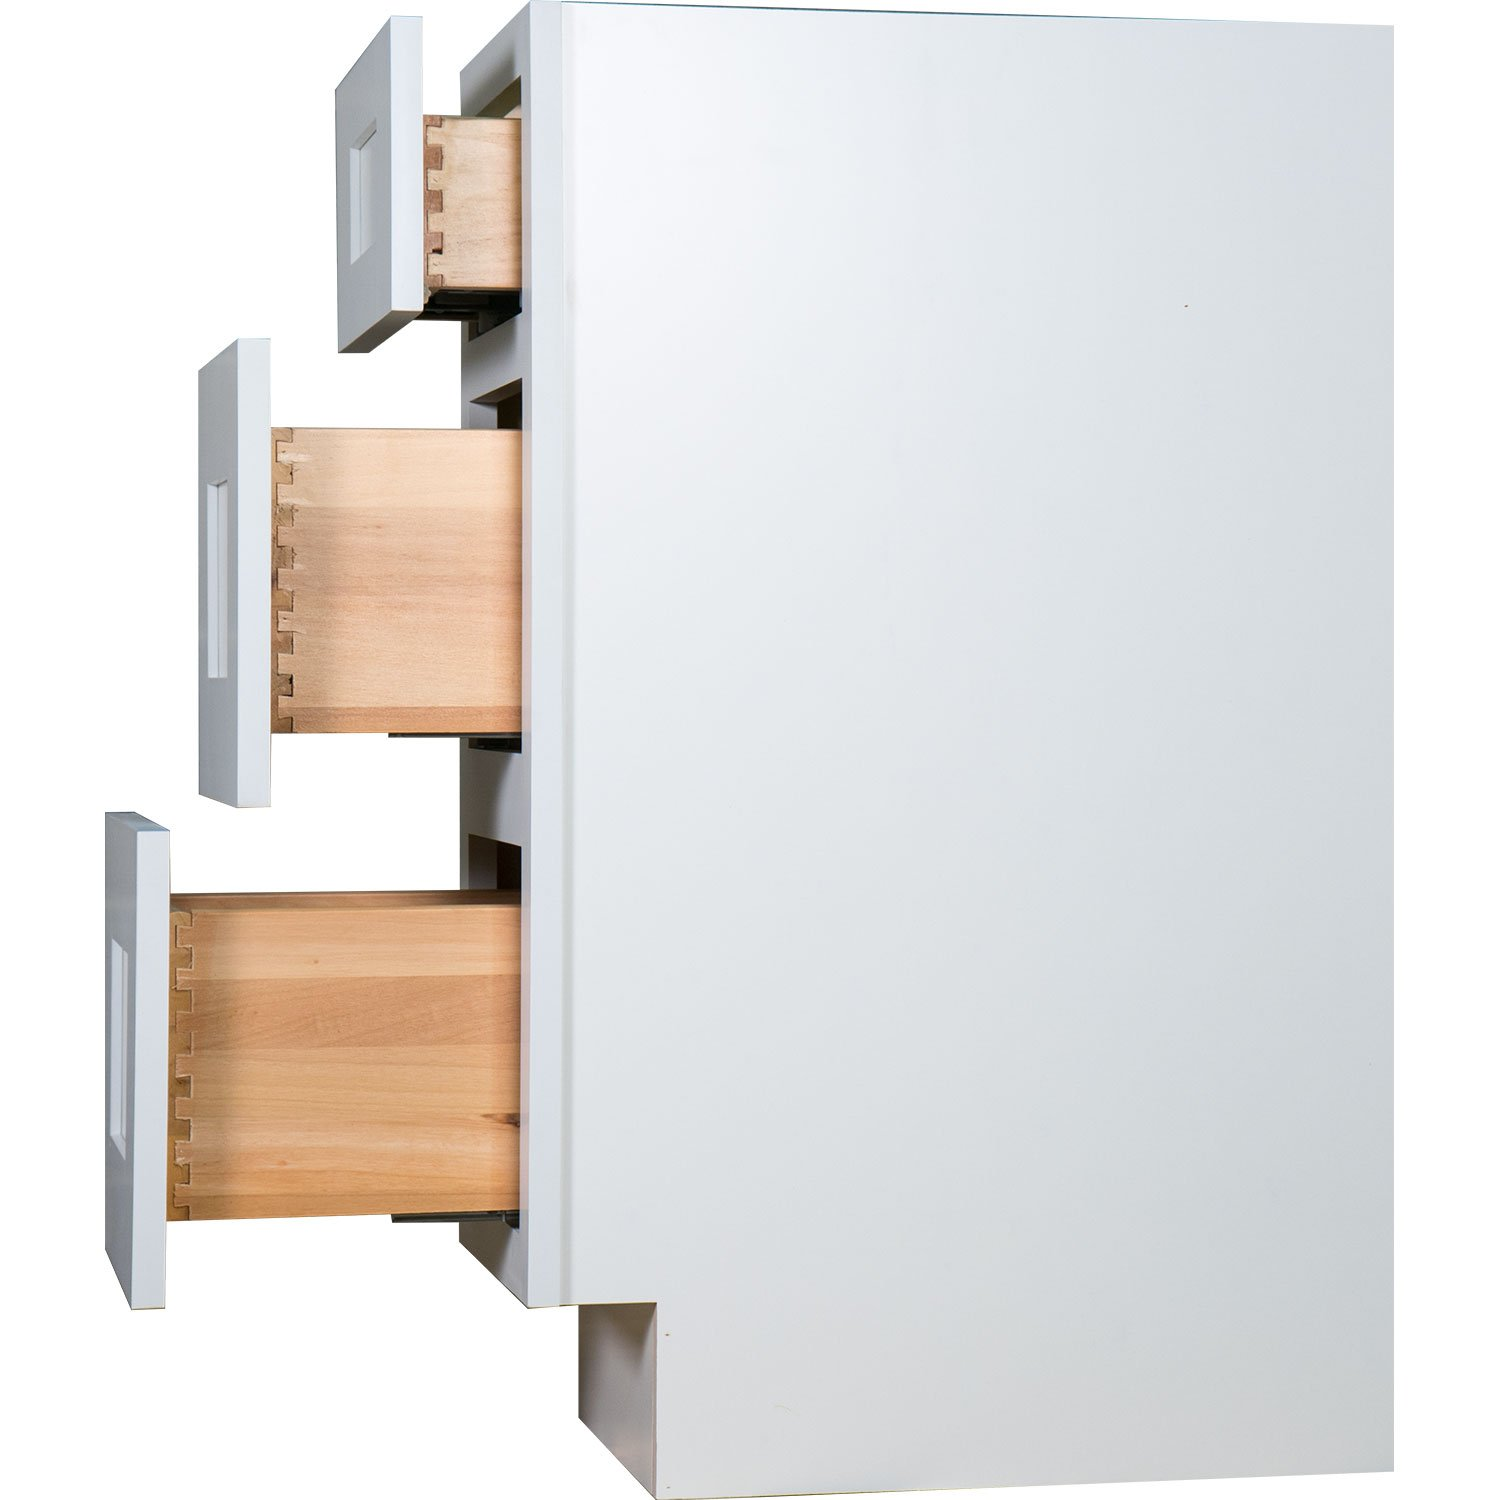 Everyday Cabinets 18 Inch Bathroom Vanity Base Cabinet In Shaker White With  Soft Close Drawers 18